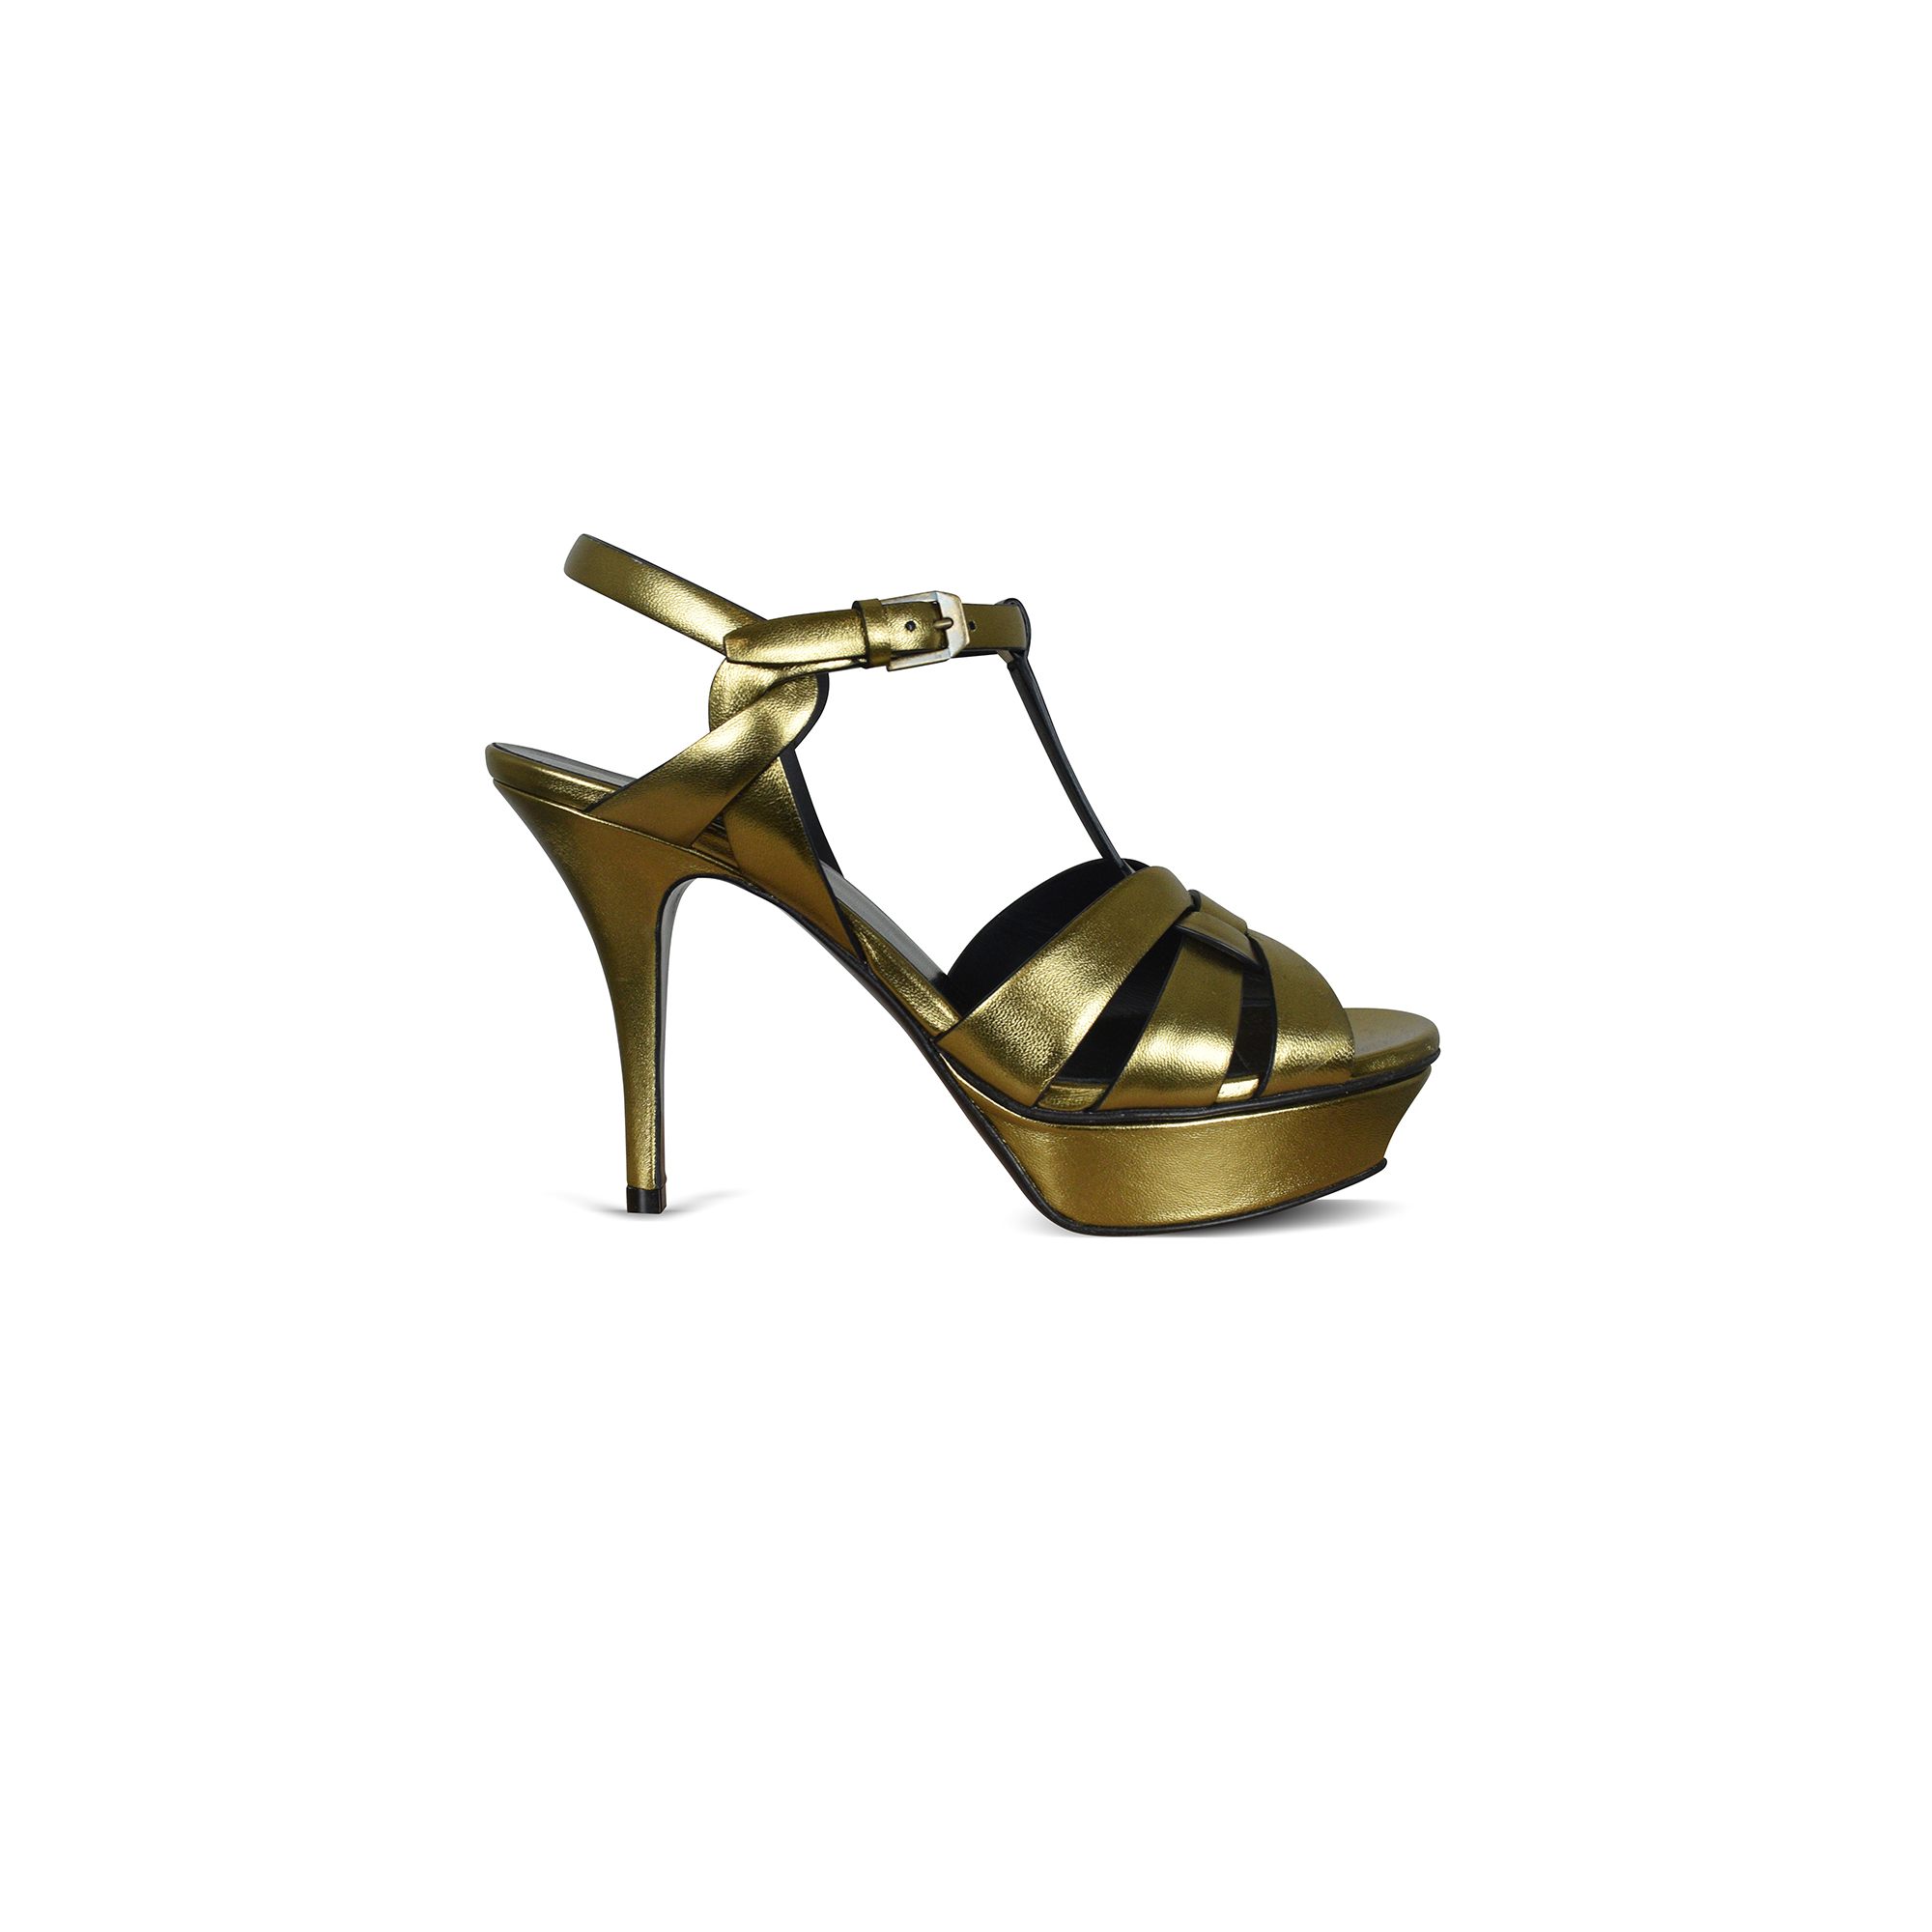 Tribute Saint Laurent sandals in gold metallic leather with black finishes.